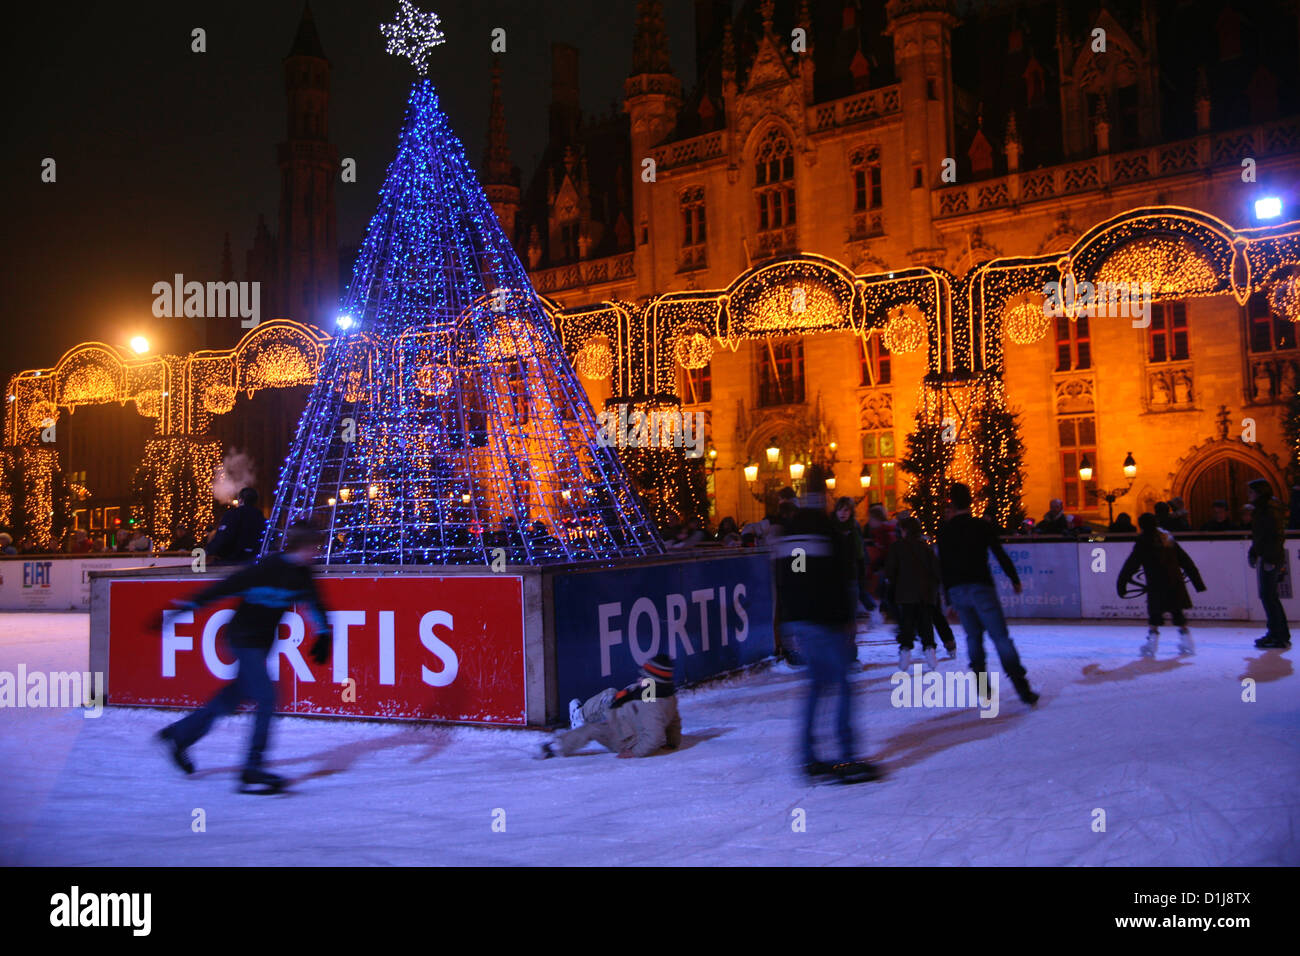 Skaters in the main square in Bruges on Christmas eve - Stock Image